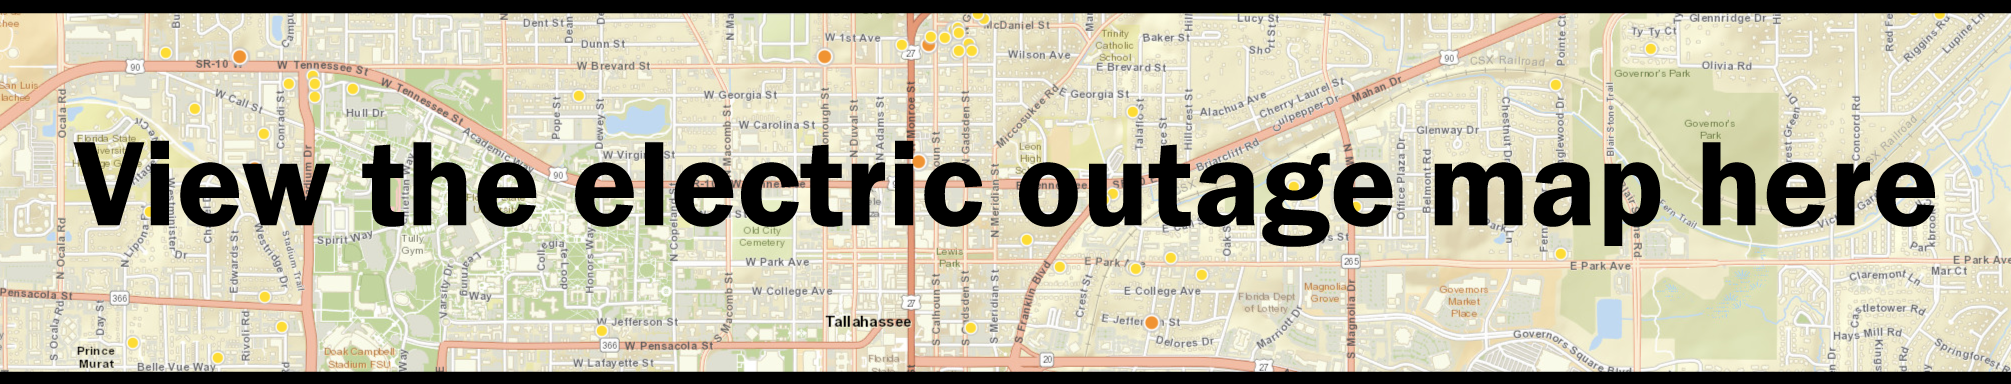 View the Electric Outage Map Here